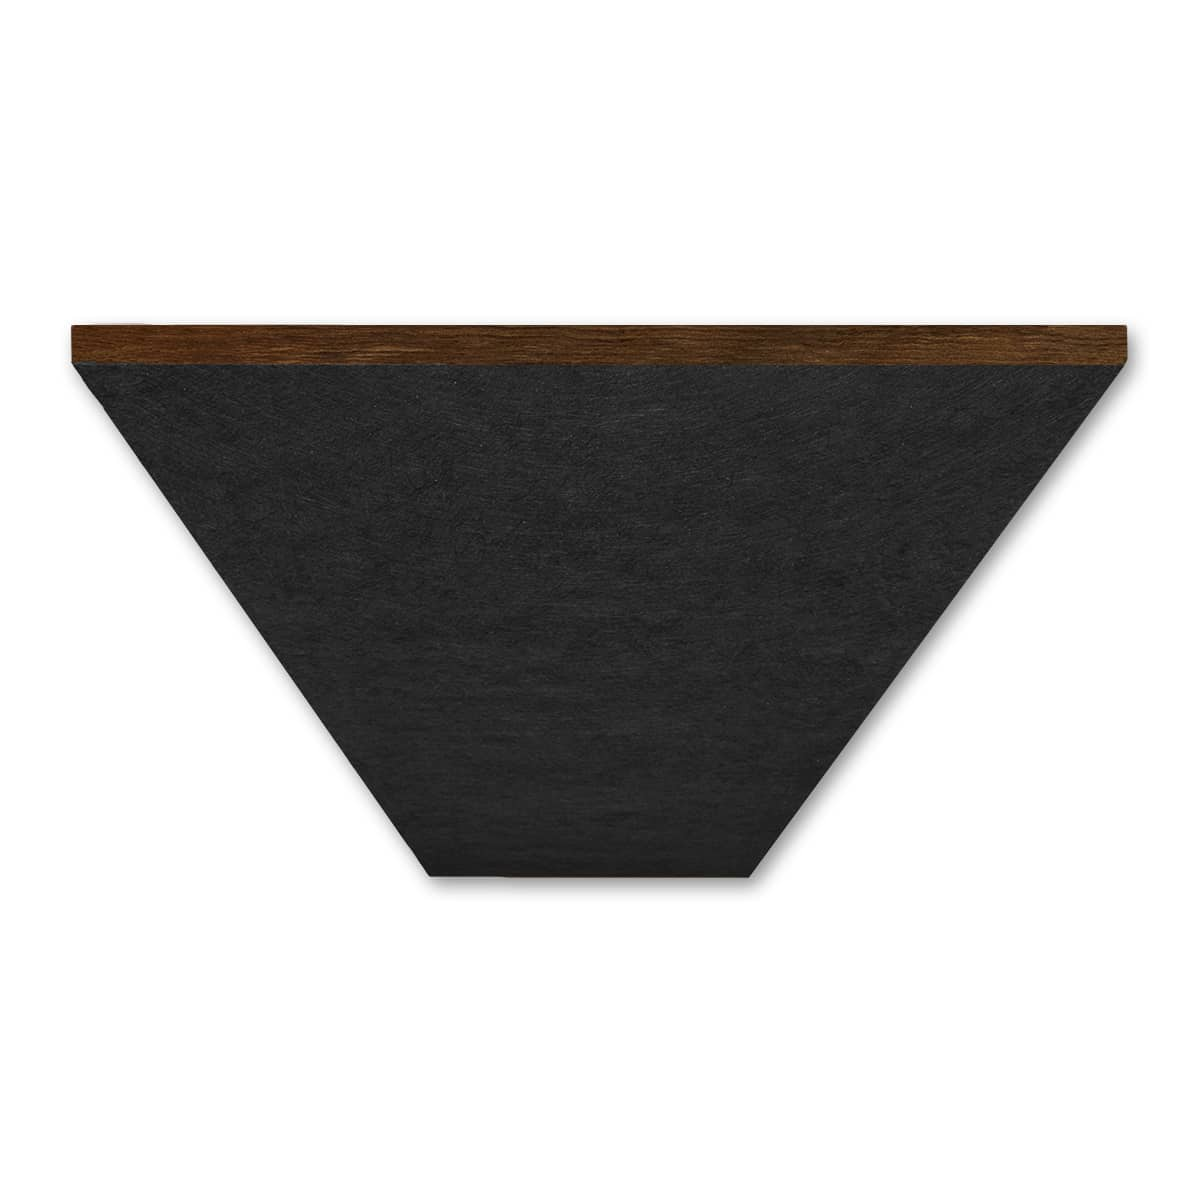 Alphamidnight black acoustic ceiling tile acoustical solutions alphamidnight black acoustic ceiling tile 2 dailygadgetfo Image collections